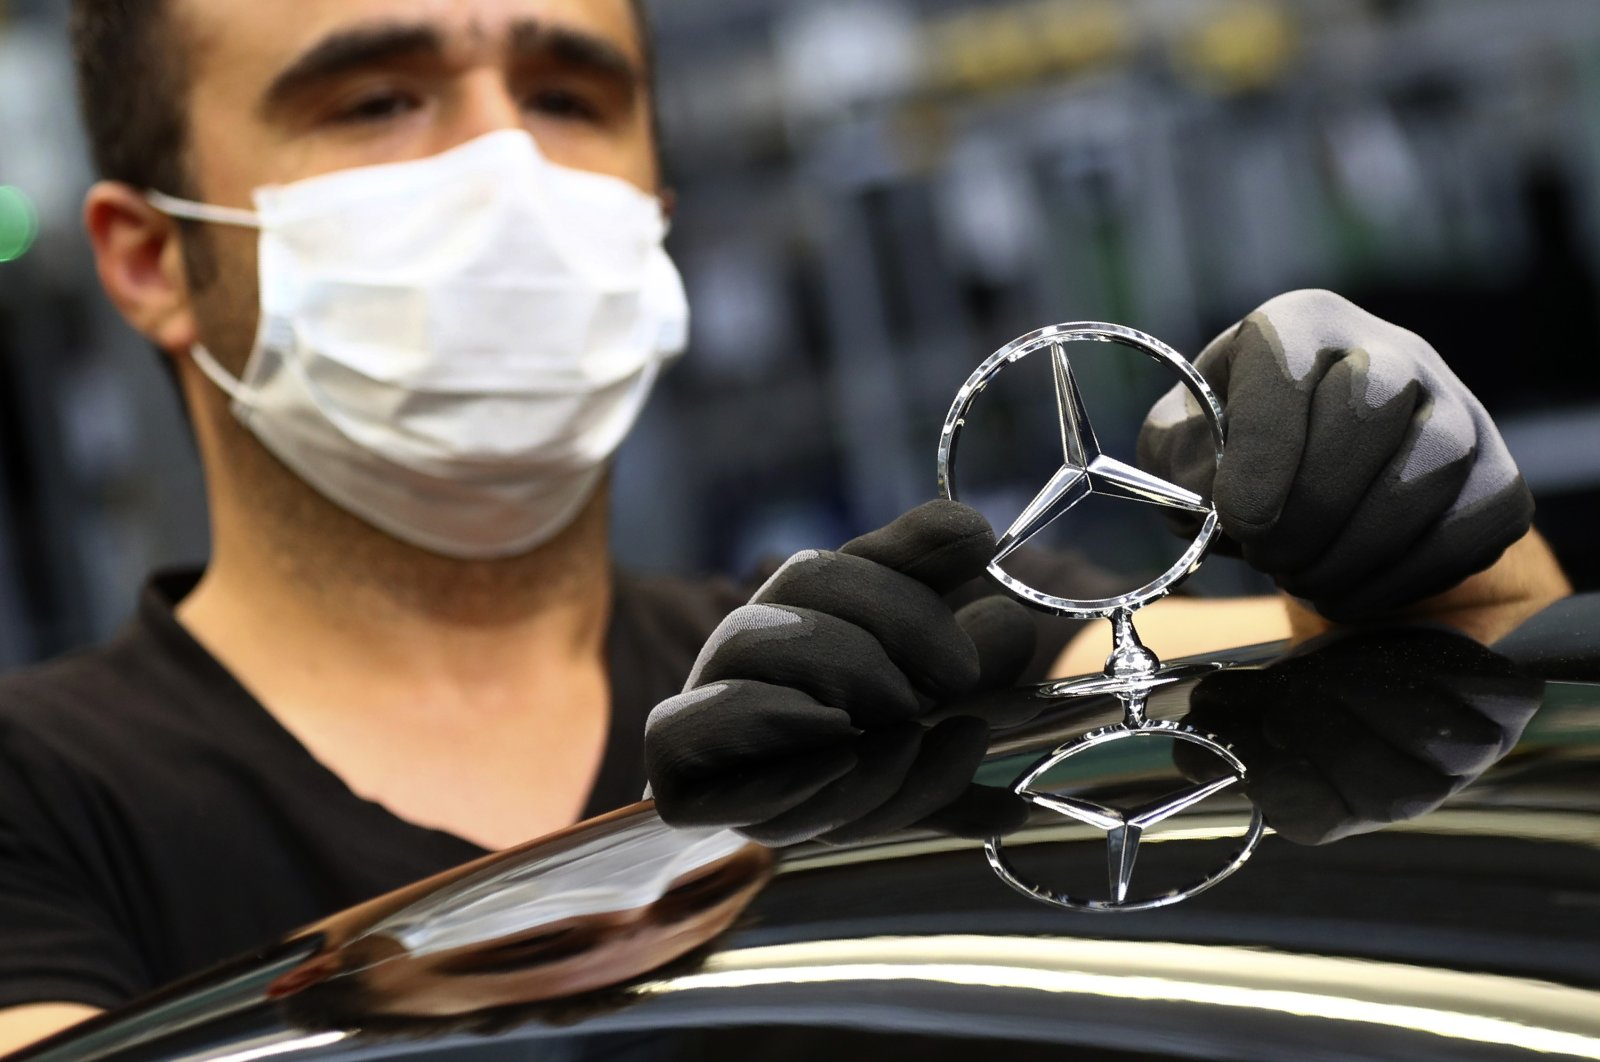 An employee wearing a face mask attaches a Mercedes emblem as he works on an S-class car at the Mercedes plant in Sindelfingen, Germany, April 30, 2020. (AP Photo)